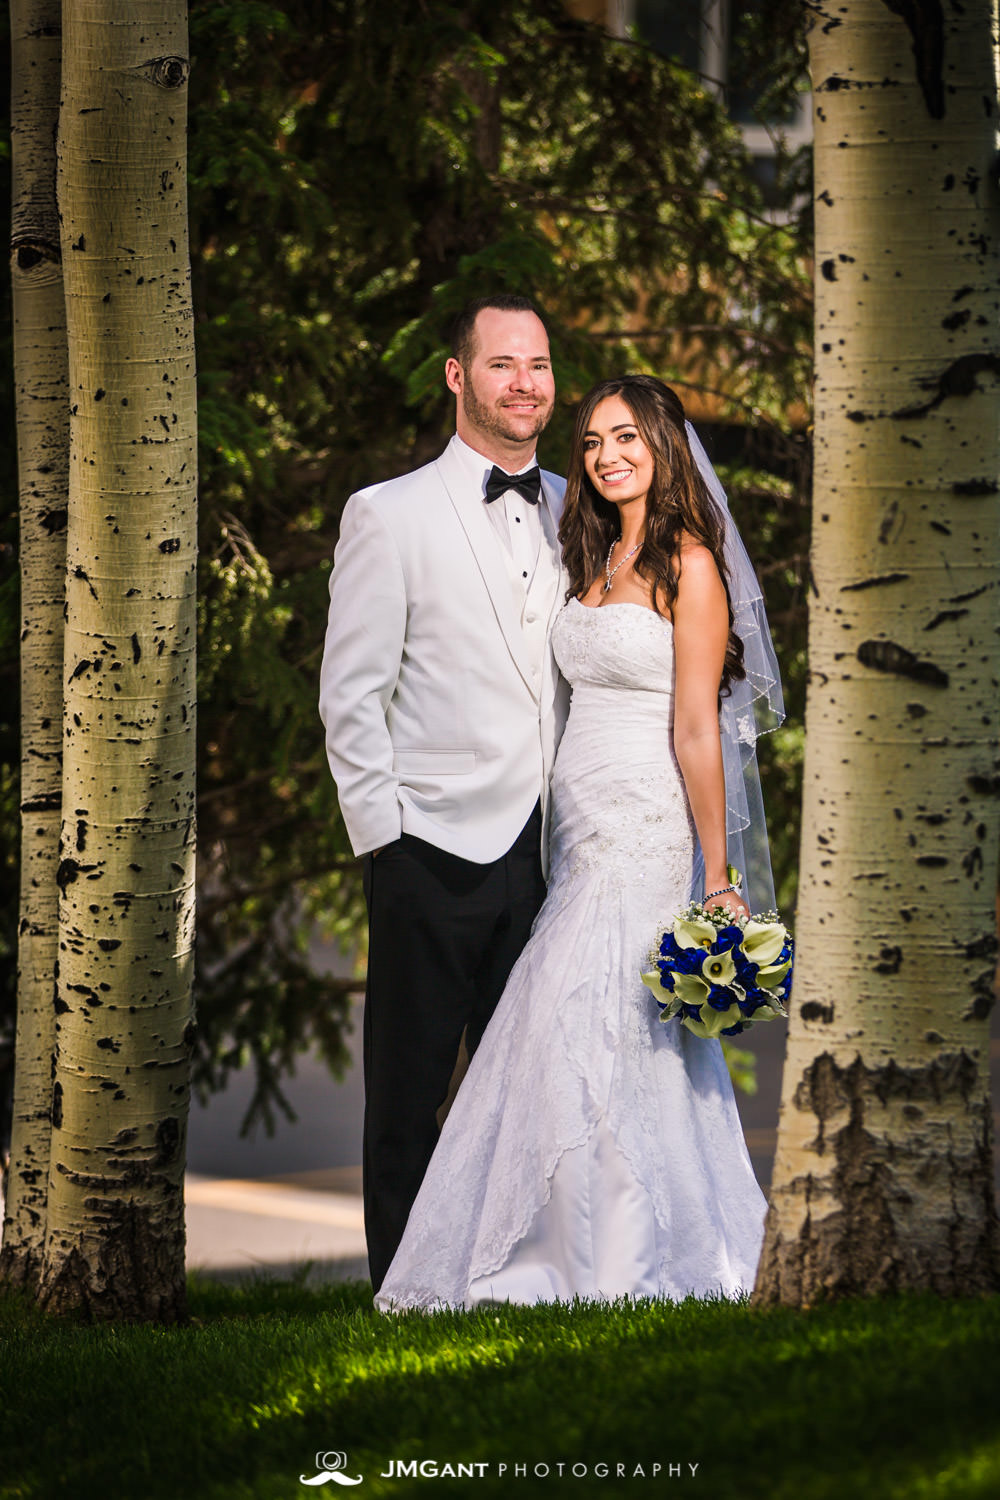 Vail Colorado Wedding | Bride and groom in Vail village | Colorado wedding photographer | © JMGant Photography | http://www.jmgantphotography.com/